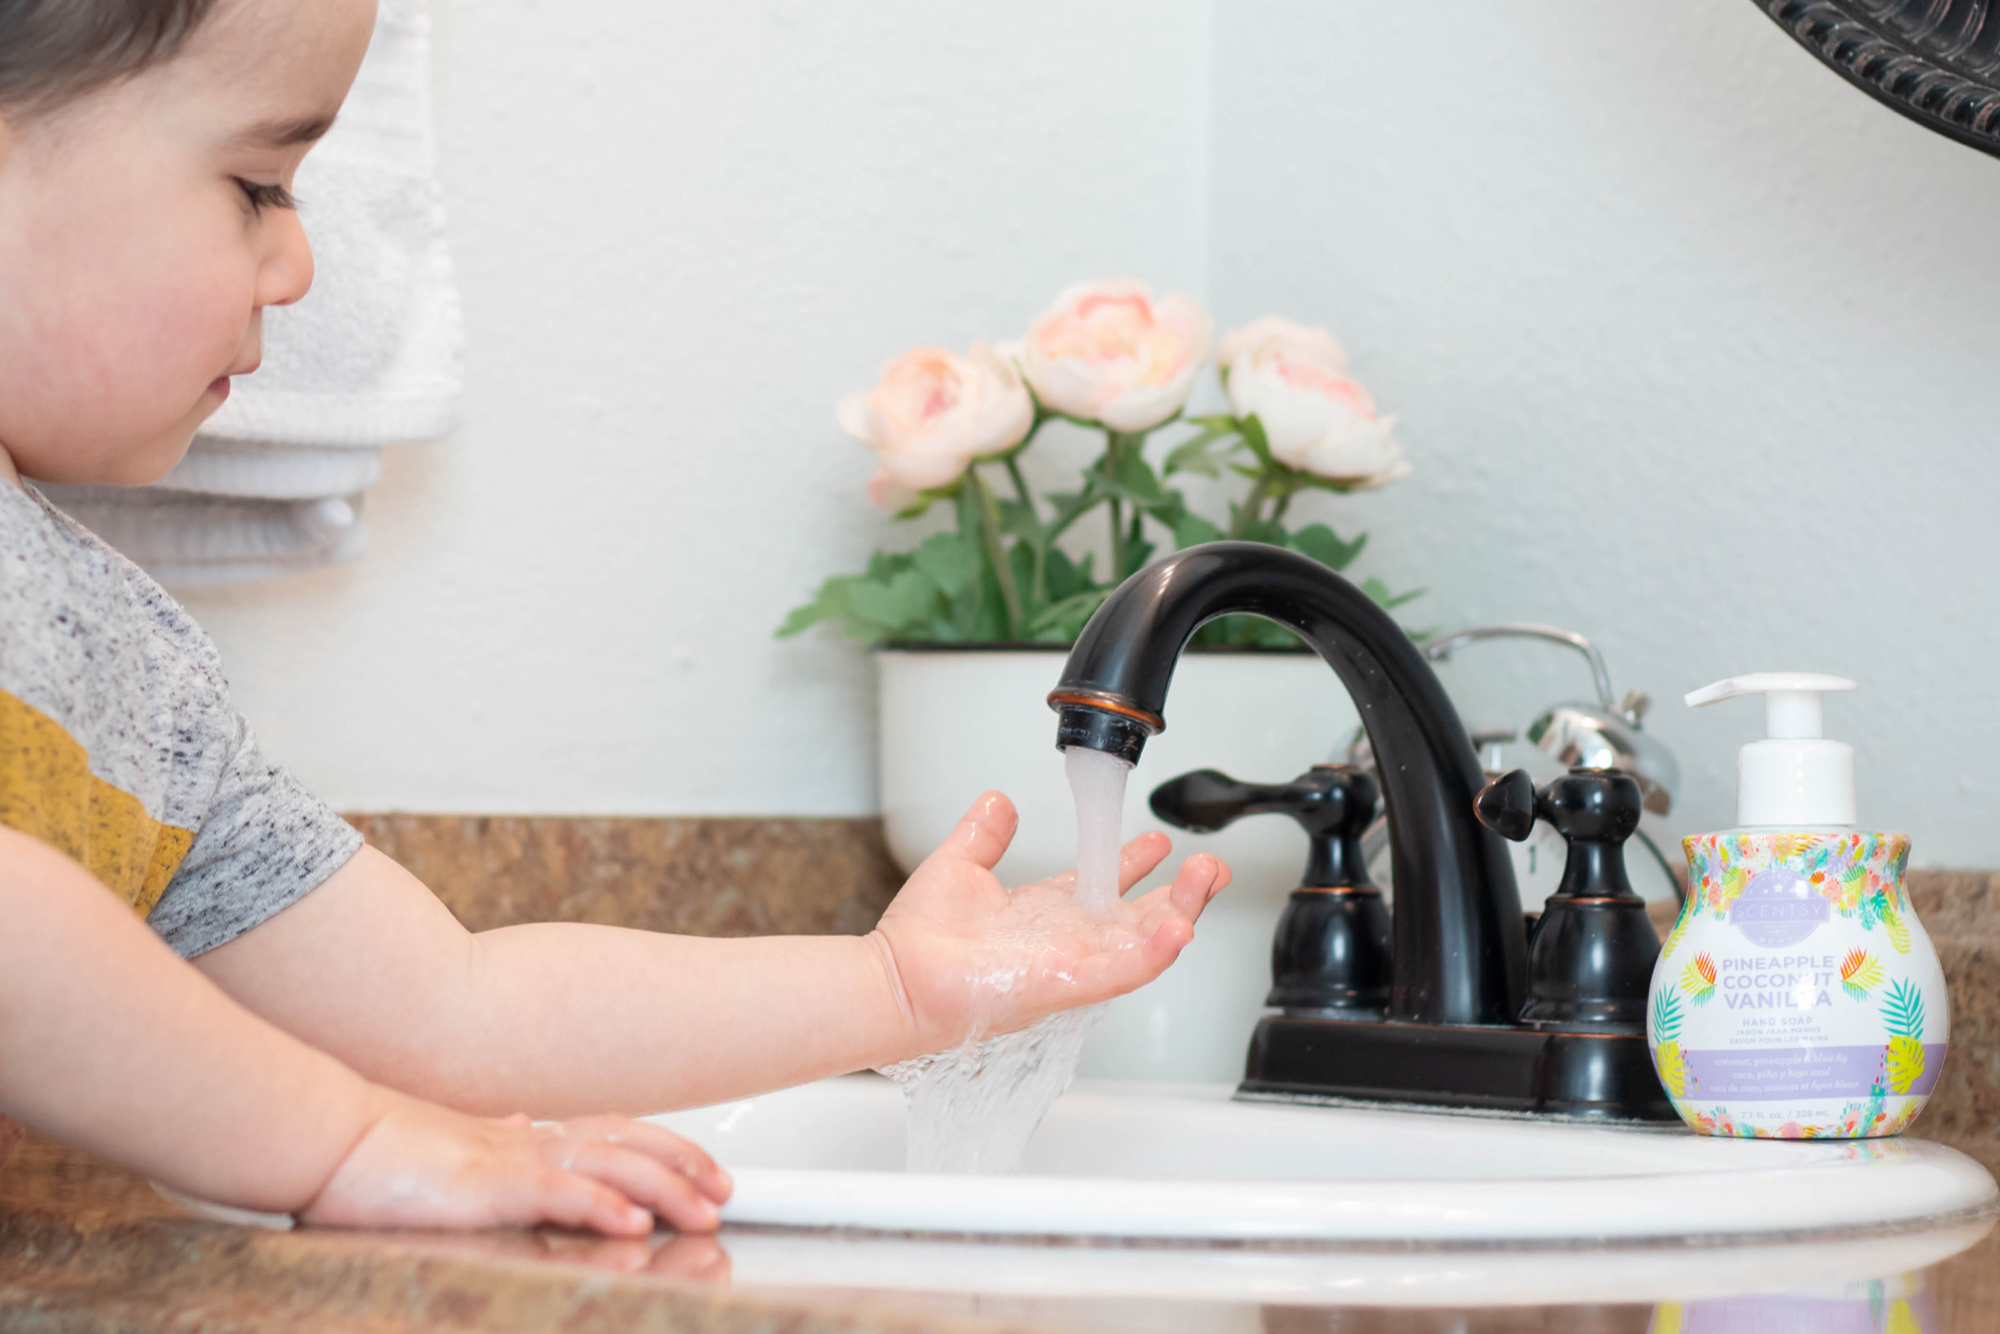 Child washing his hands with Scentsy soap